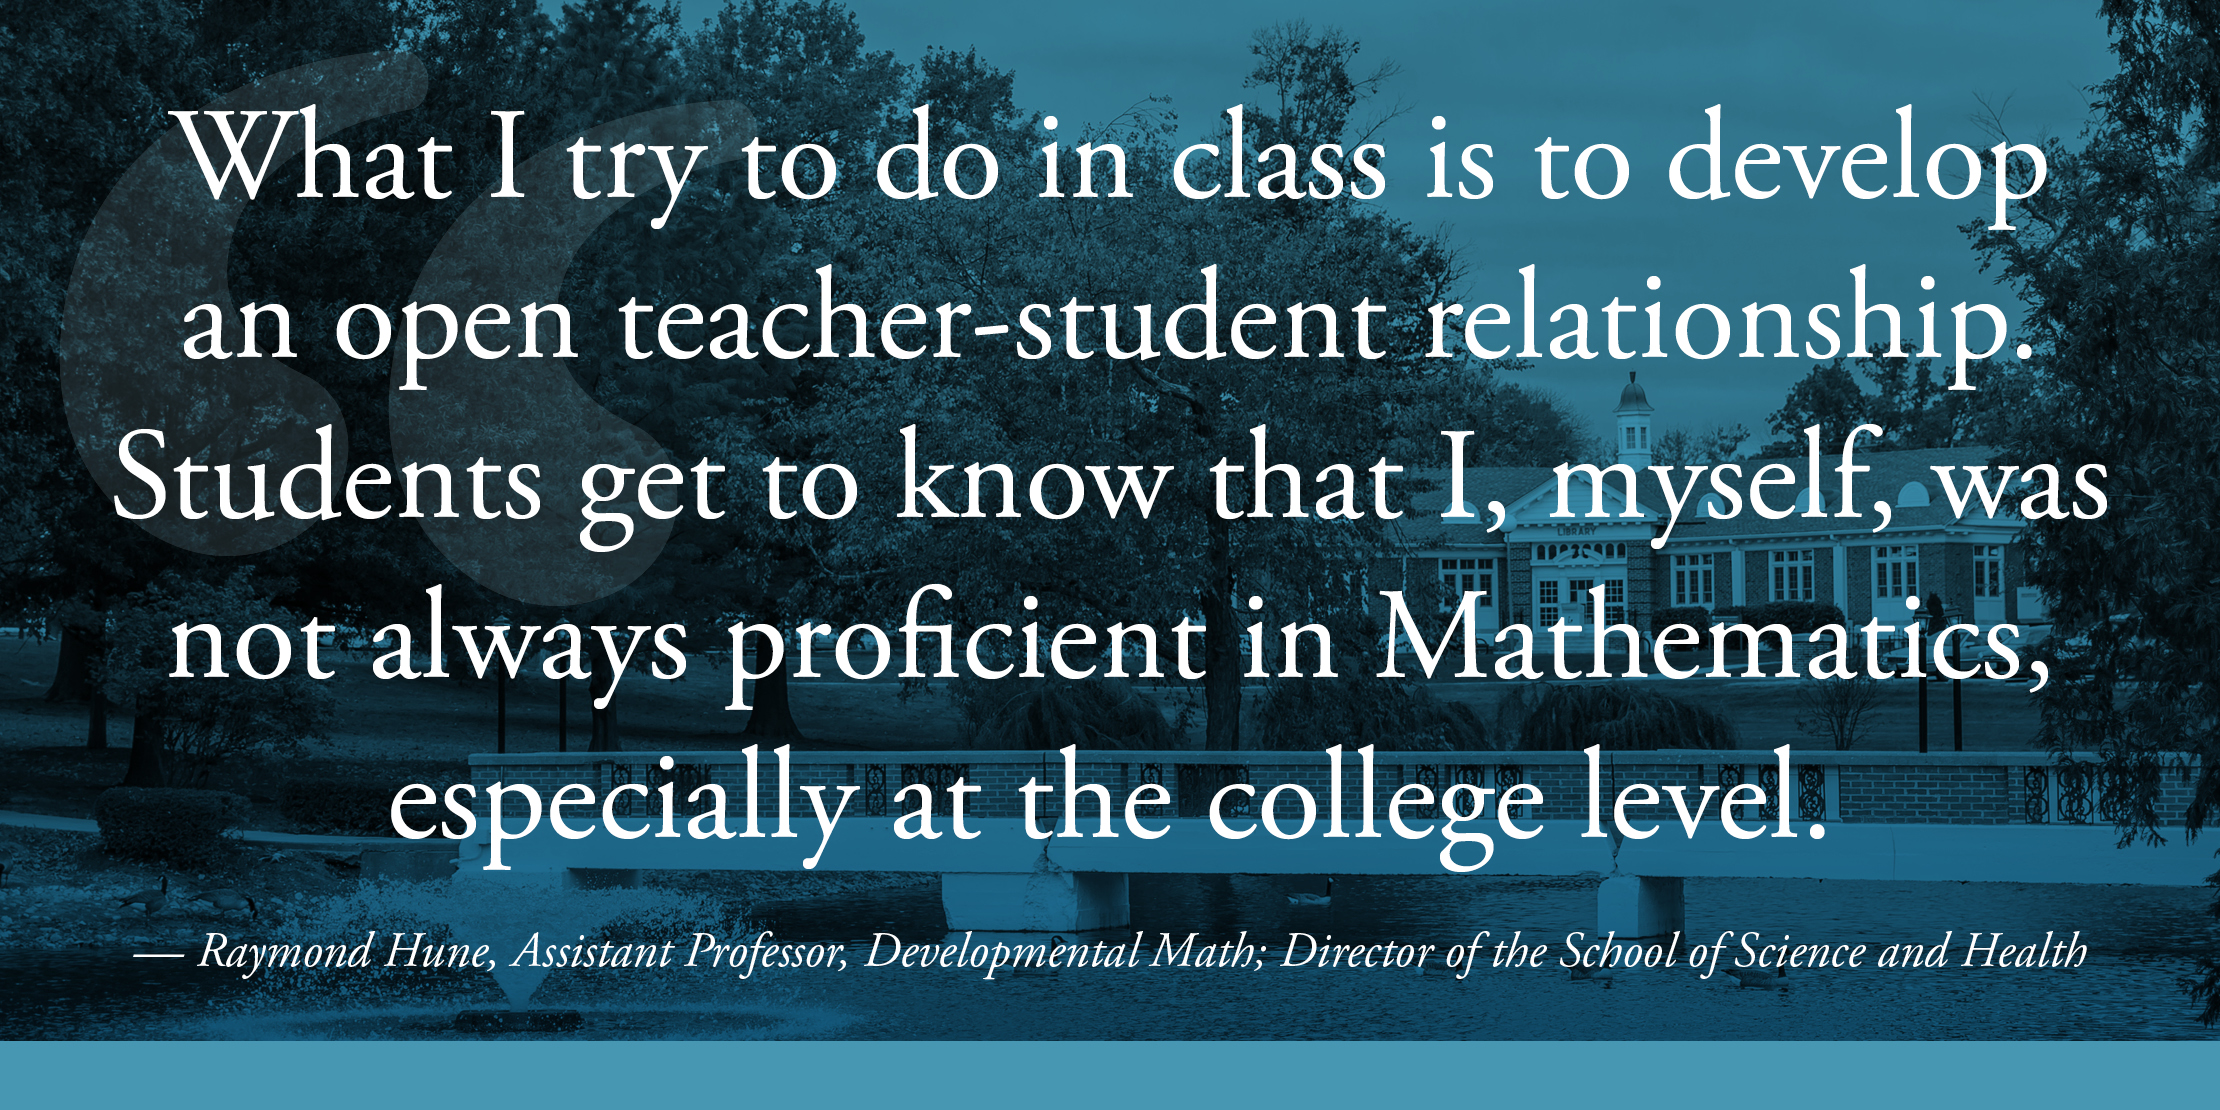 What I try to do in class is to develop an open teacher-student relationship. Students get to know that I, myself, was not always proficient in Mathematics, especially at the college level. — Raymond Hune, Assistant Professor, Developmental Math; Director of the School of Science and Health